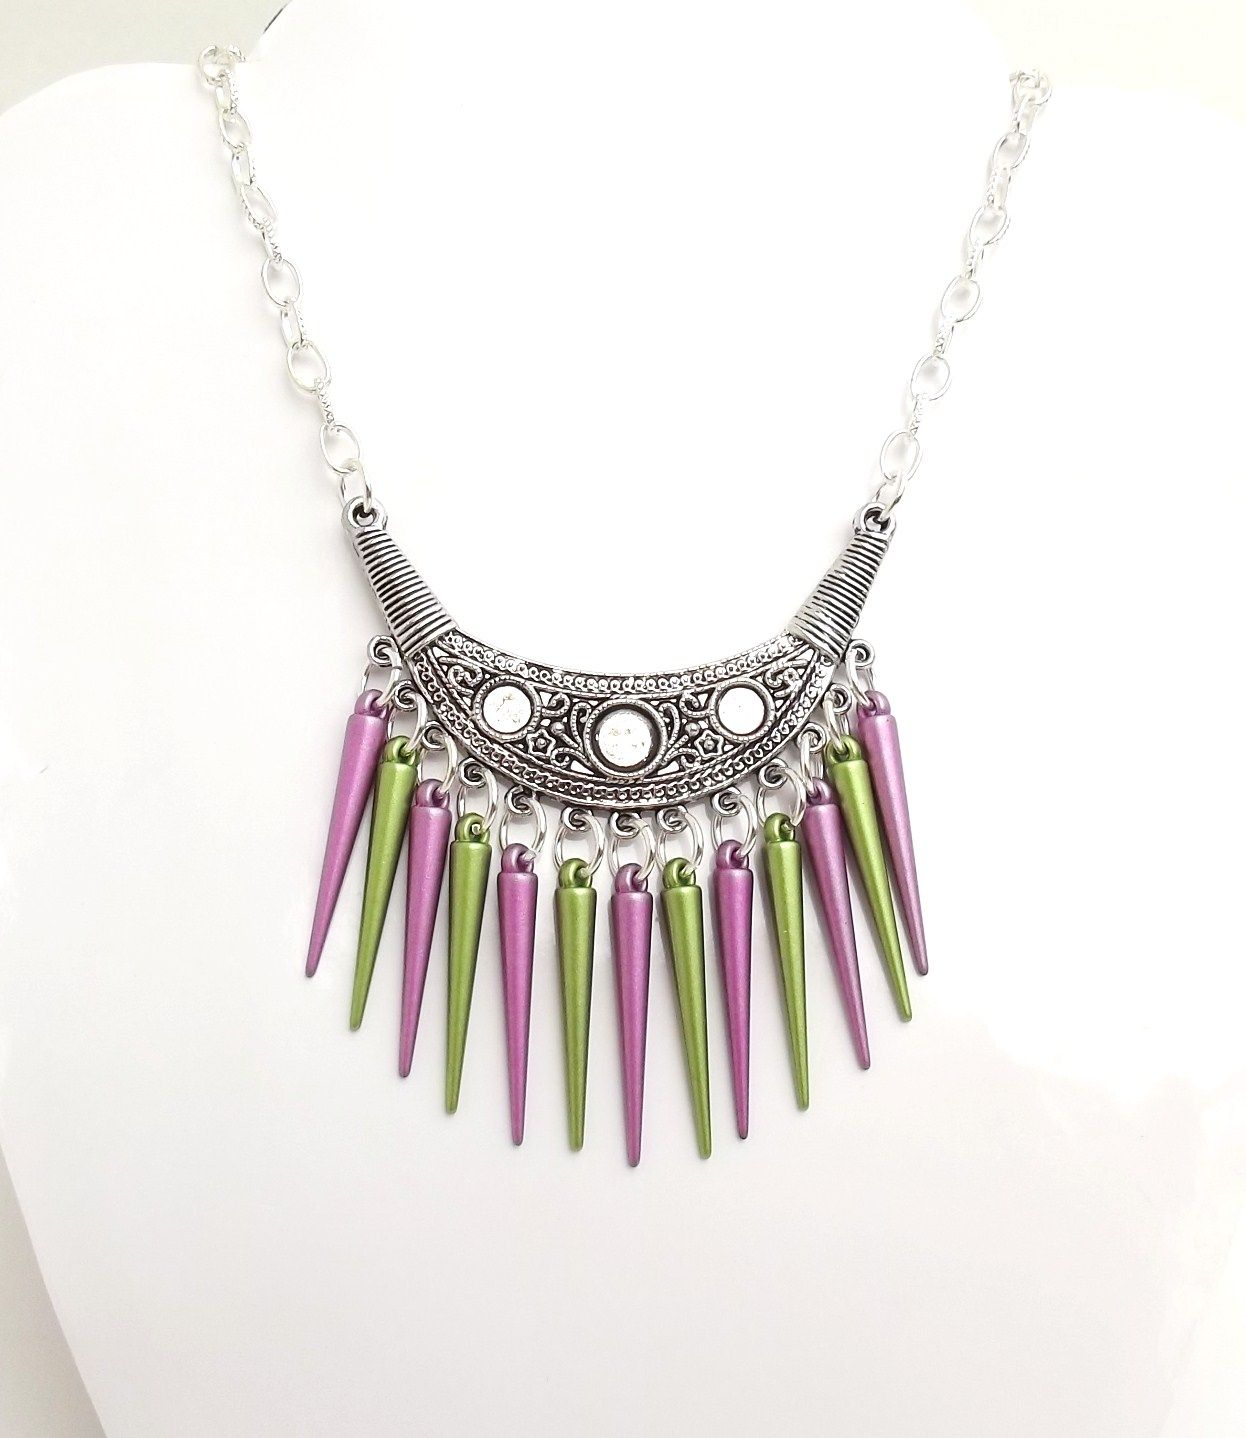 Spikey Necklace  £10.00  http://www.facebook.com/JewelleryByM.E#!/JewelleryByM.E